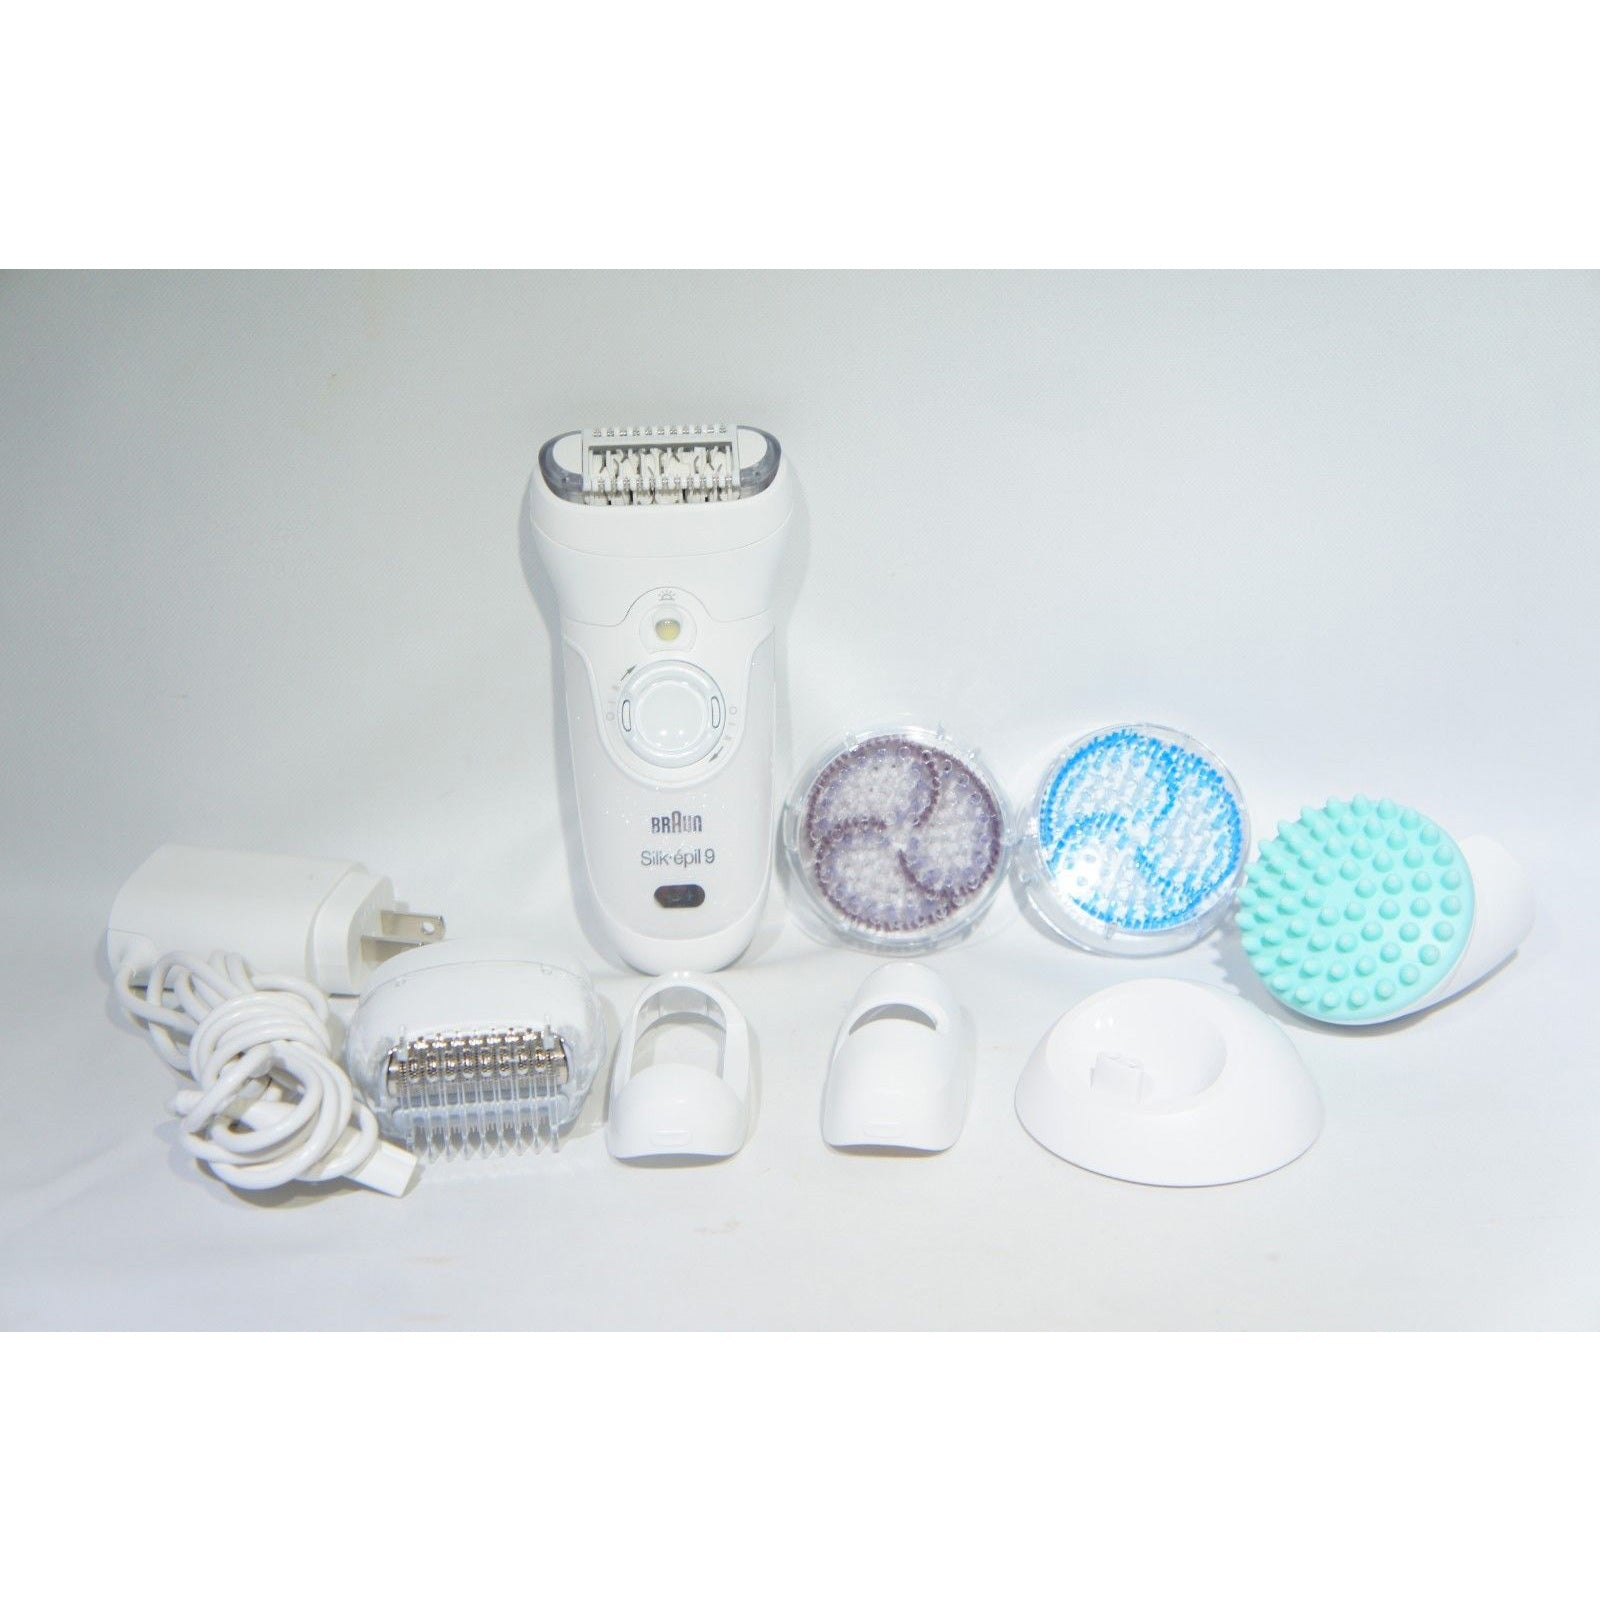 Braun Silk-épil 9 9-961V Women's Epilator Electric Hair Removal